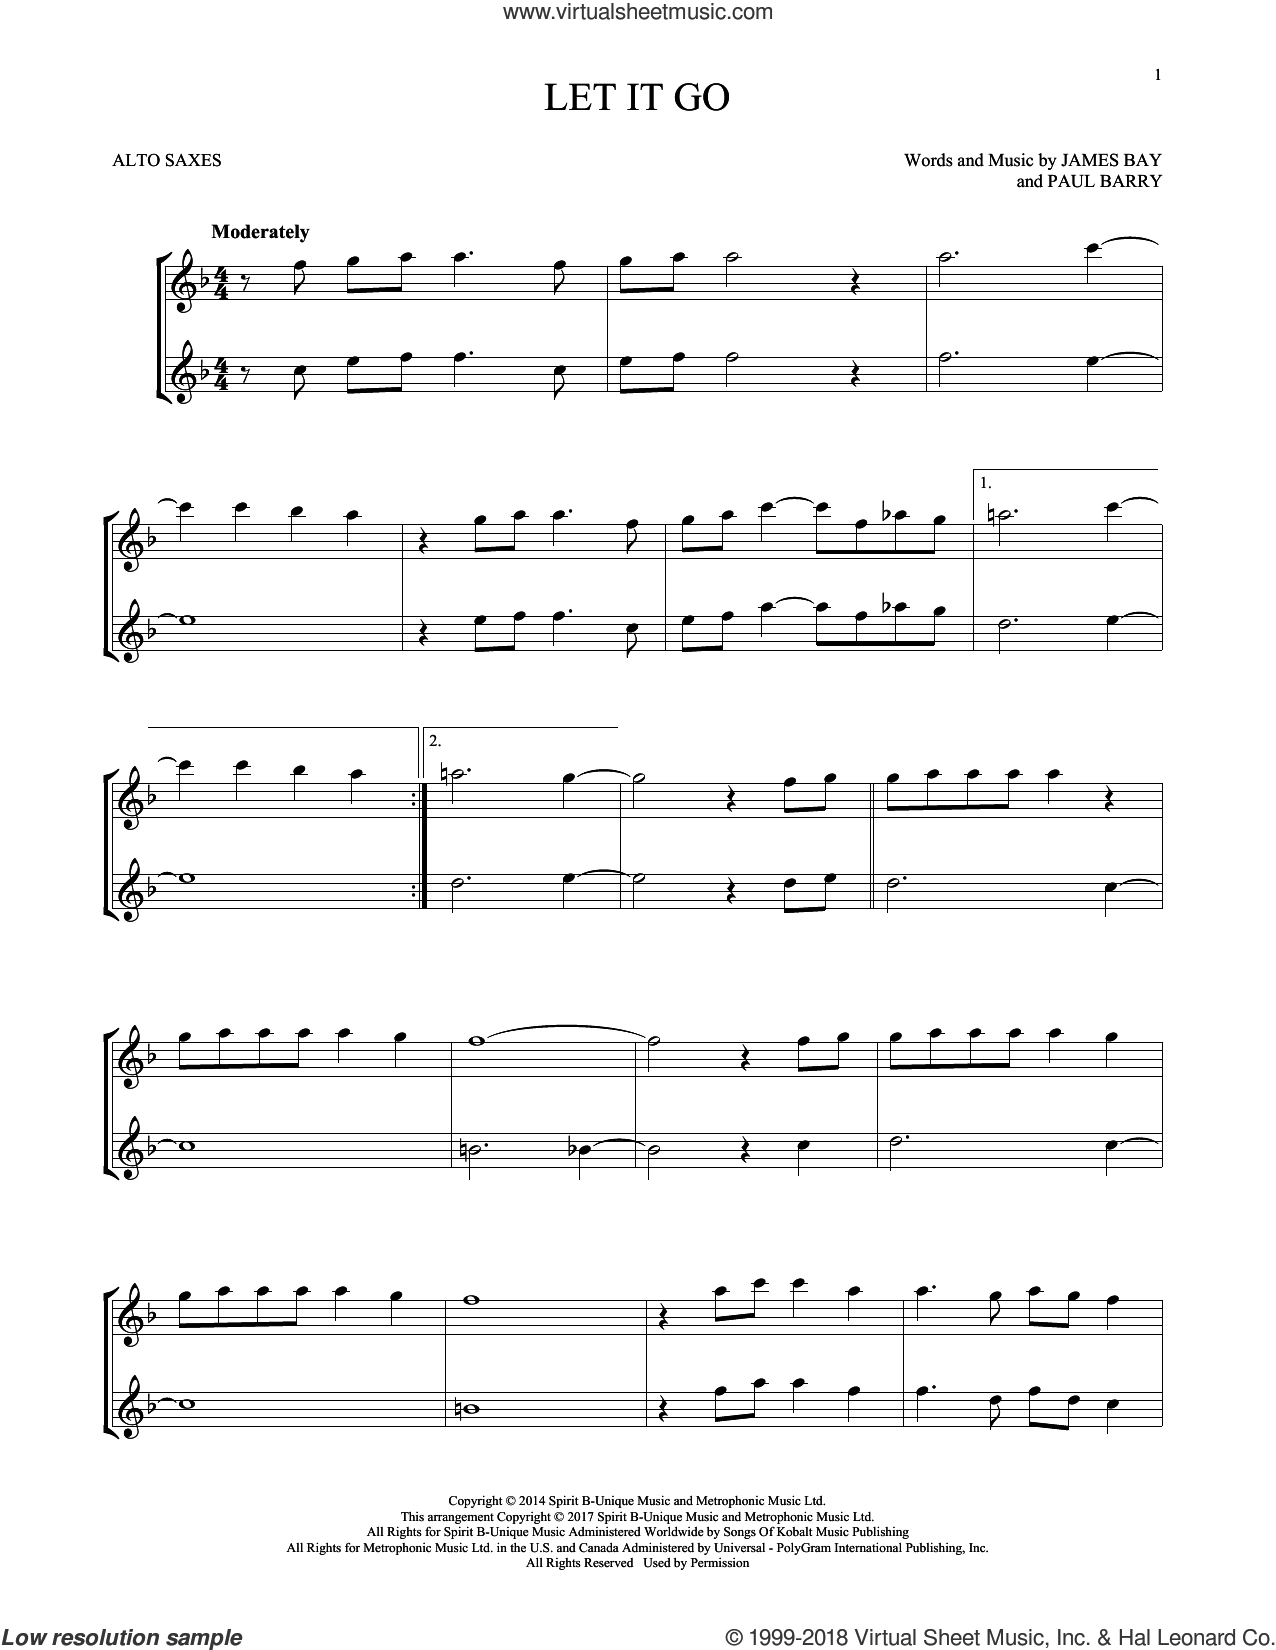 Let It Go sheet music for two alto saxophones (duets) by James Bay and Paul Barry, intermediate skill level